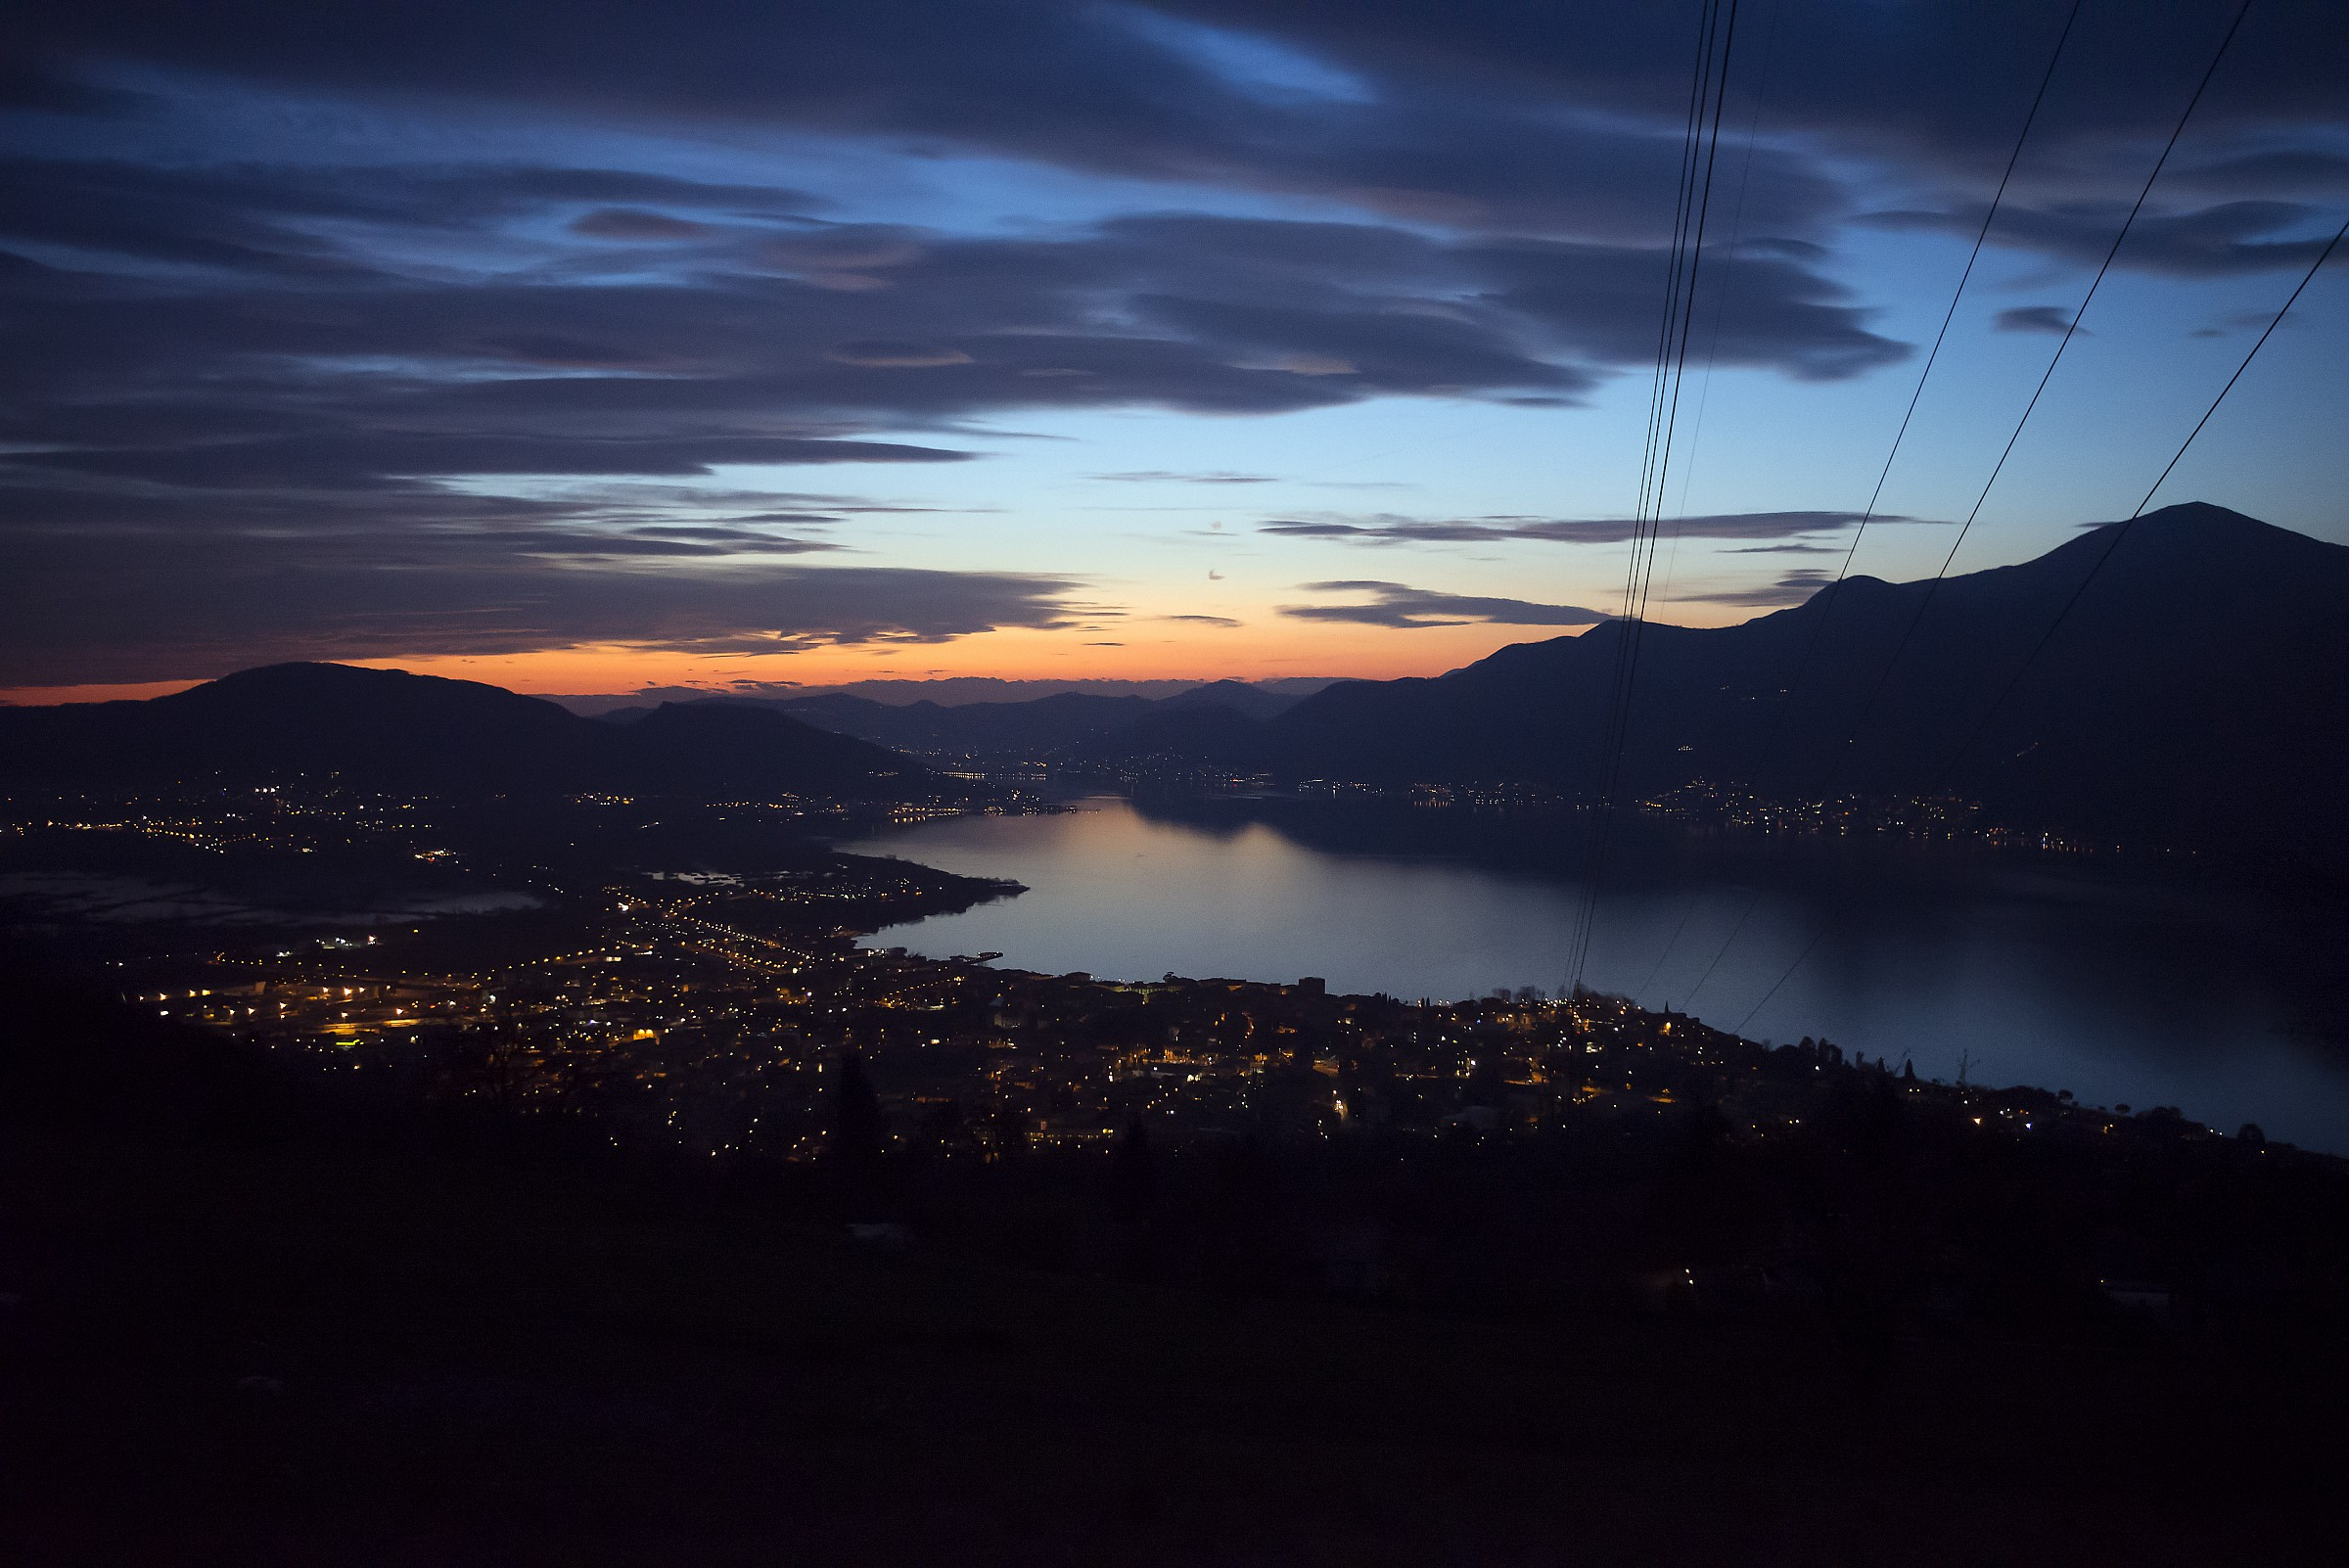 Le luci del lago d'Iseo...